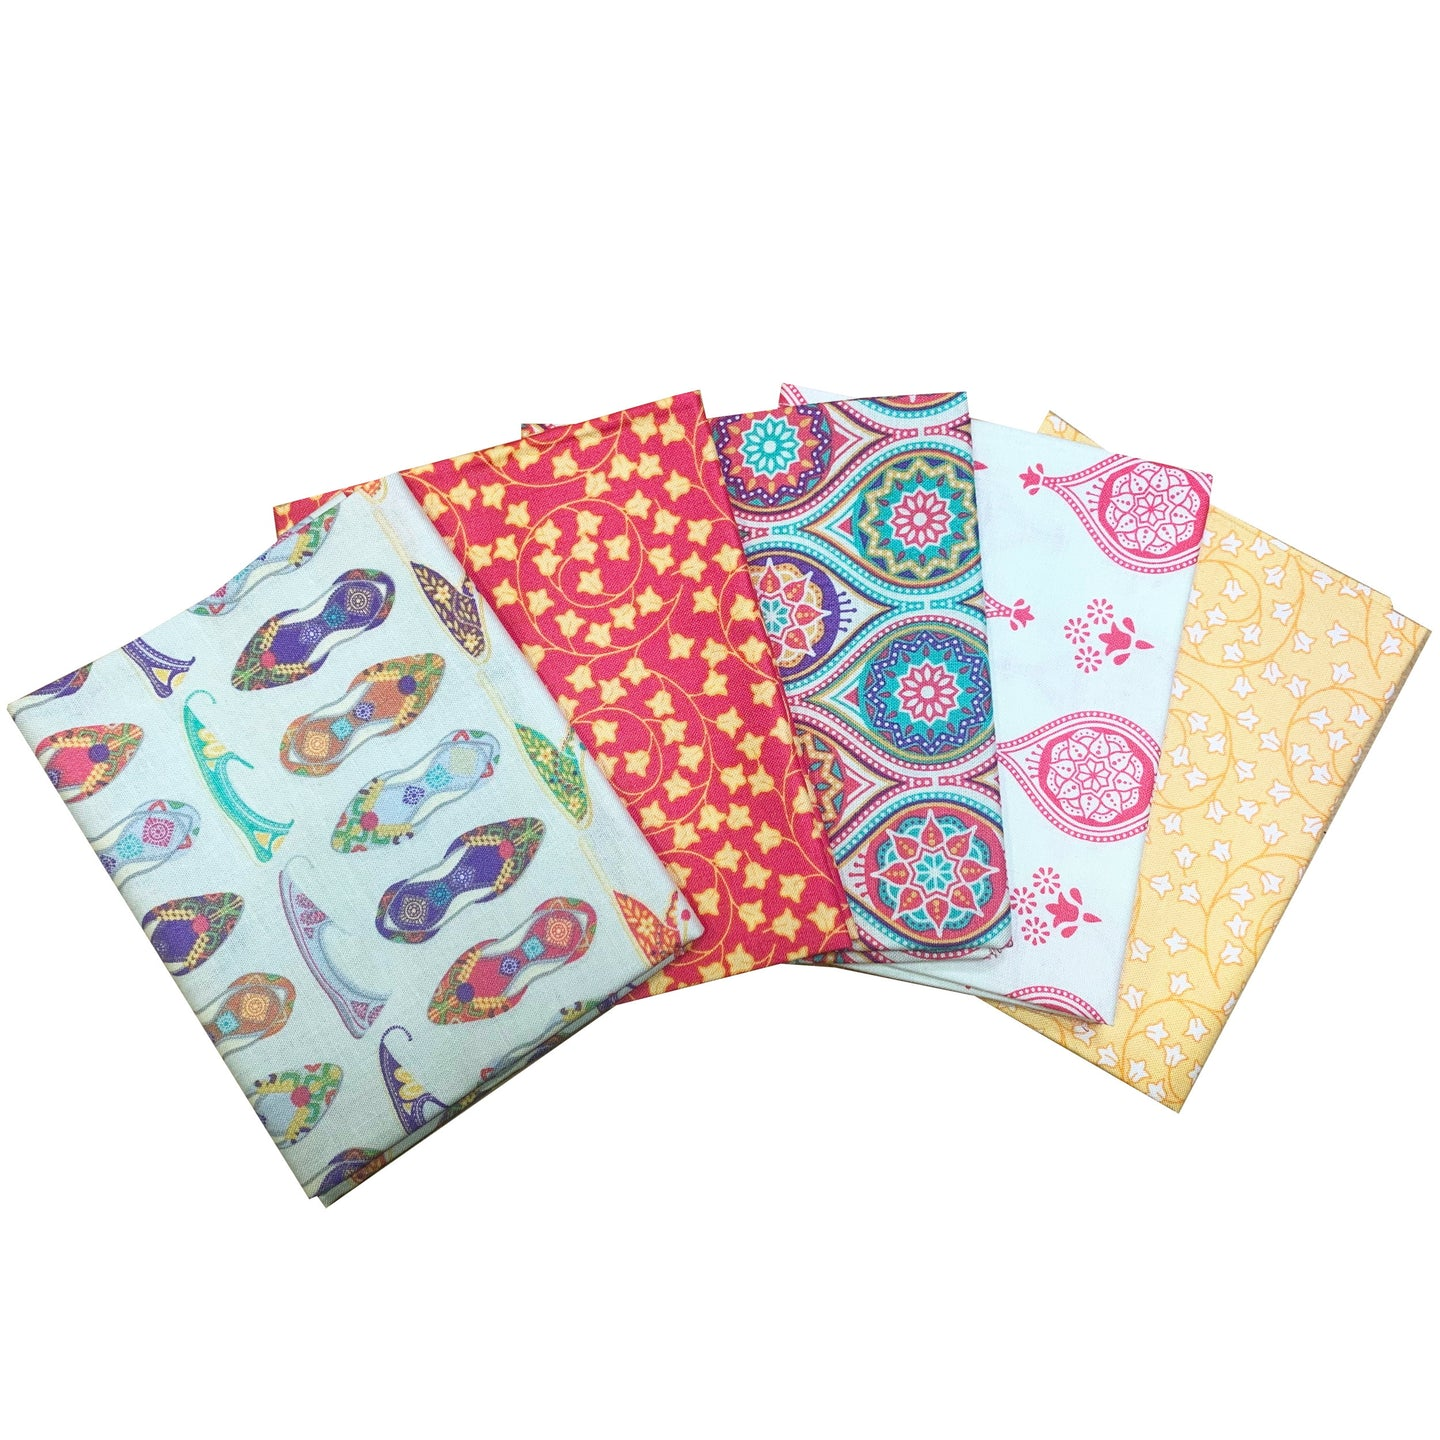 New Delhi Shoes Fat Quarters pack of 5 craft cotton fabrics: designed by Debbie Shore.